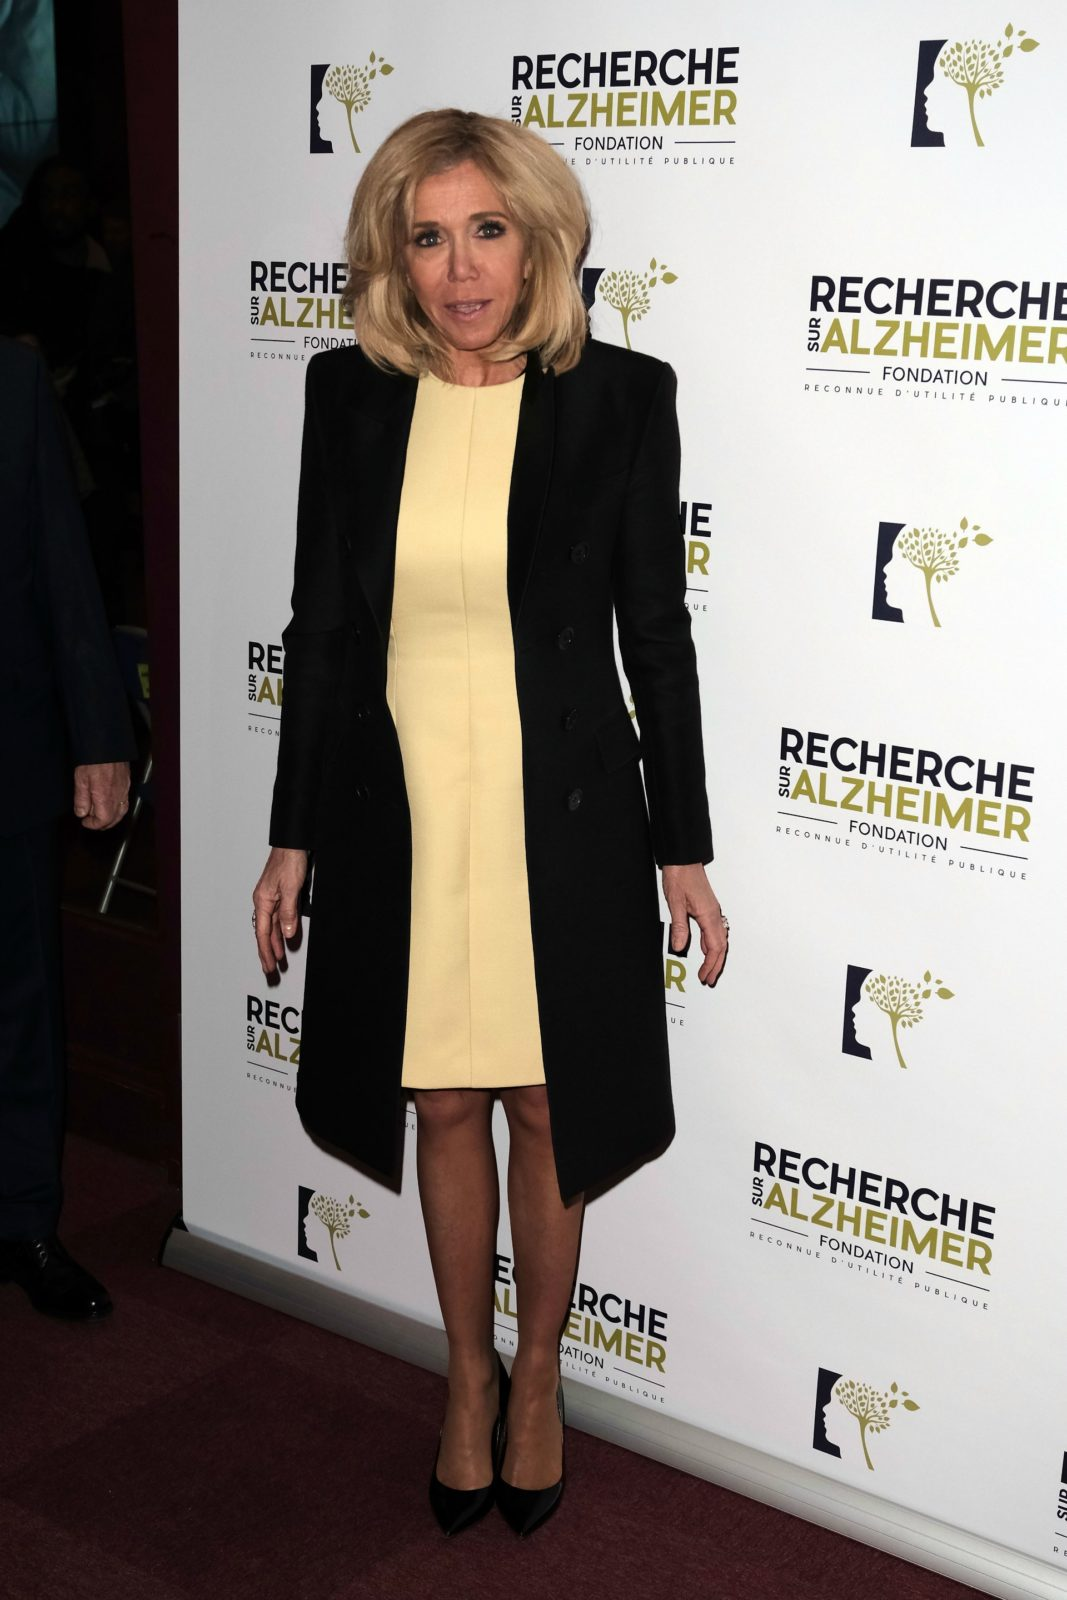 Brigitte Macron put her best style foot forward as she stepped out to attend the Charity Gala against Alzheimer's Disease in France earlier this month. Source: Getty